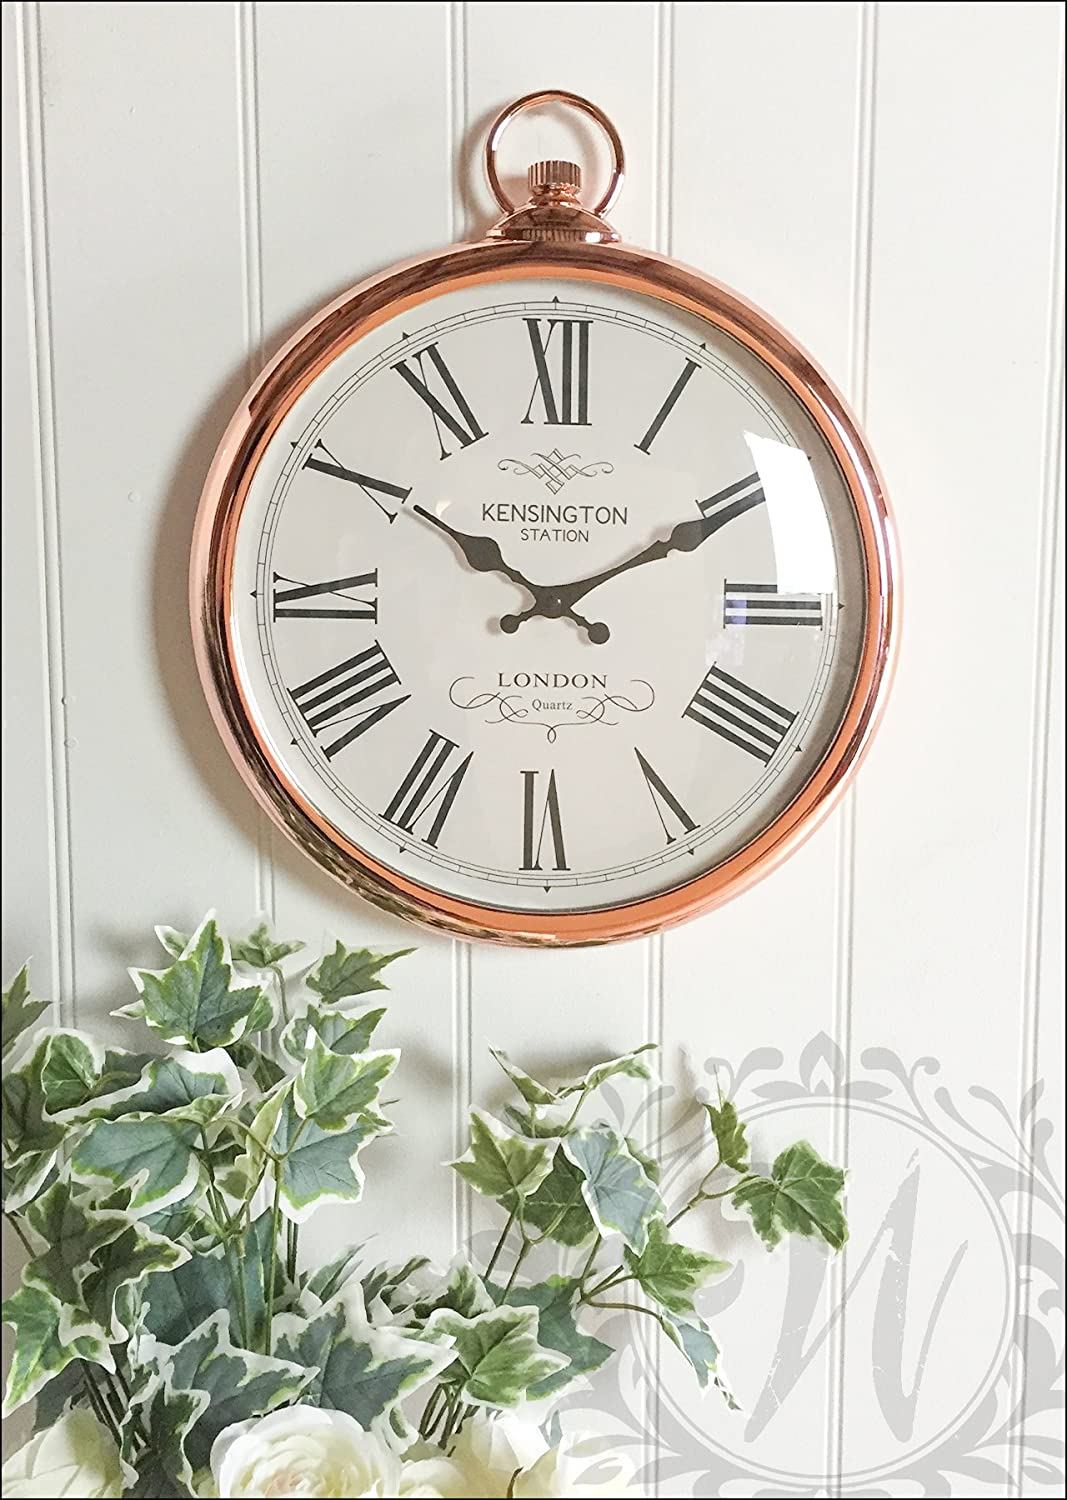 Large 42cm round copper roman numeral pocket watch kensington large 42cm round copper roman numeral pocket watch kensington station wall clock amazon kitchen home amipublicfo Images